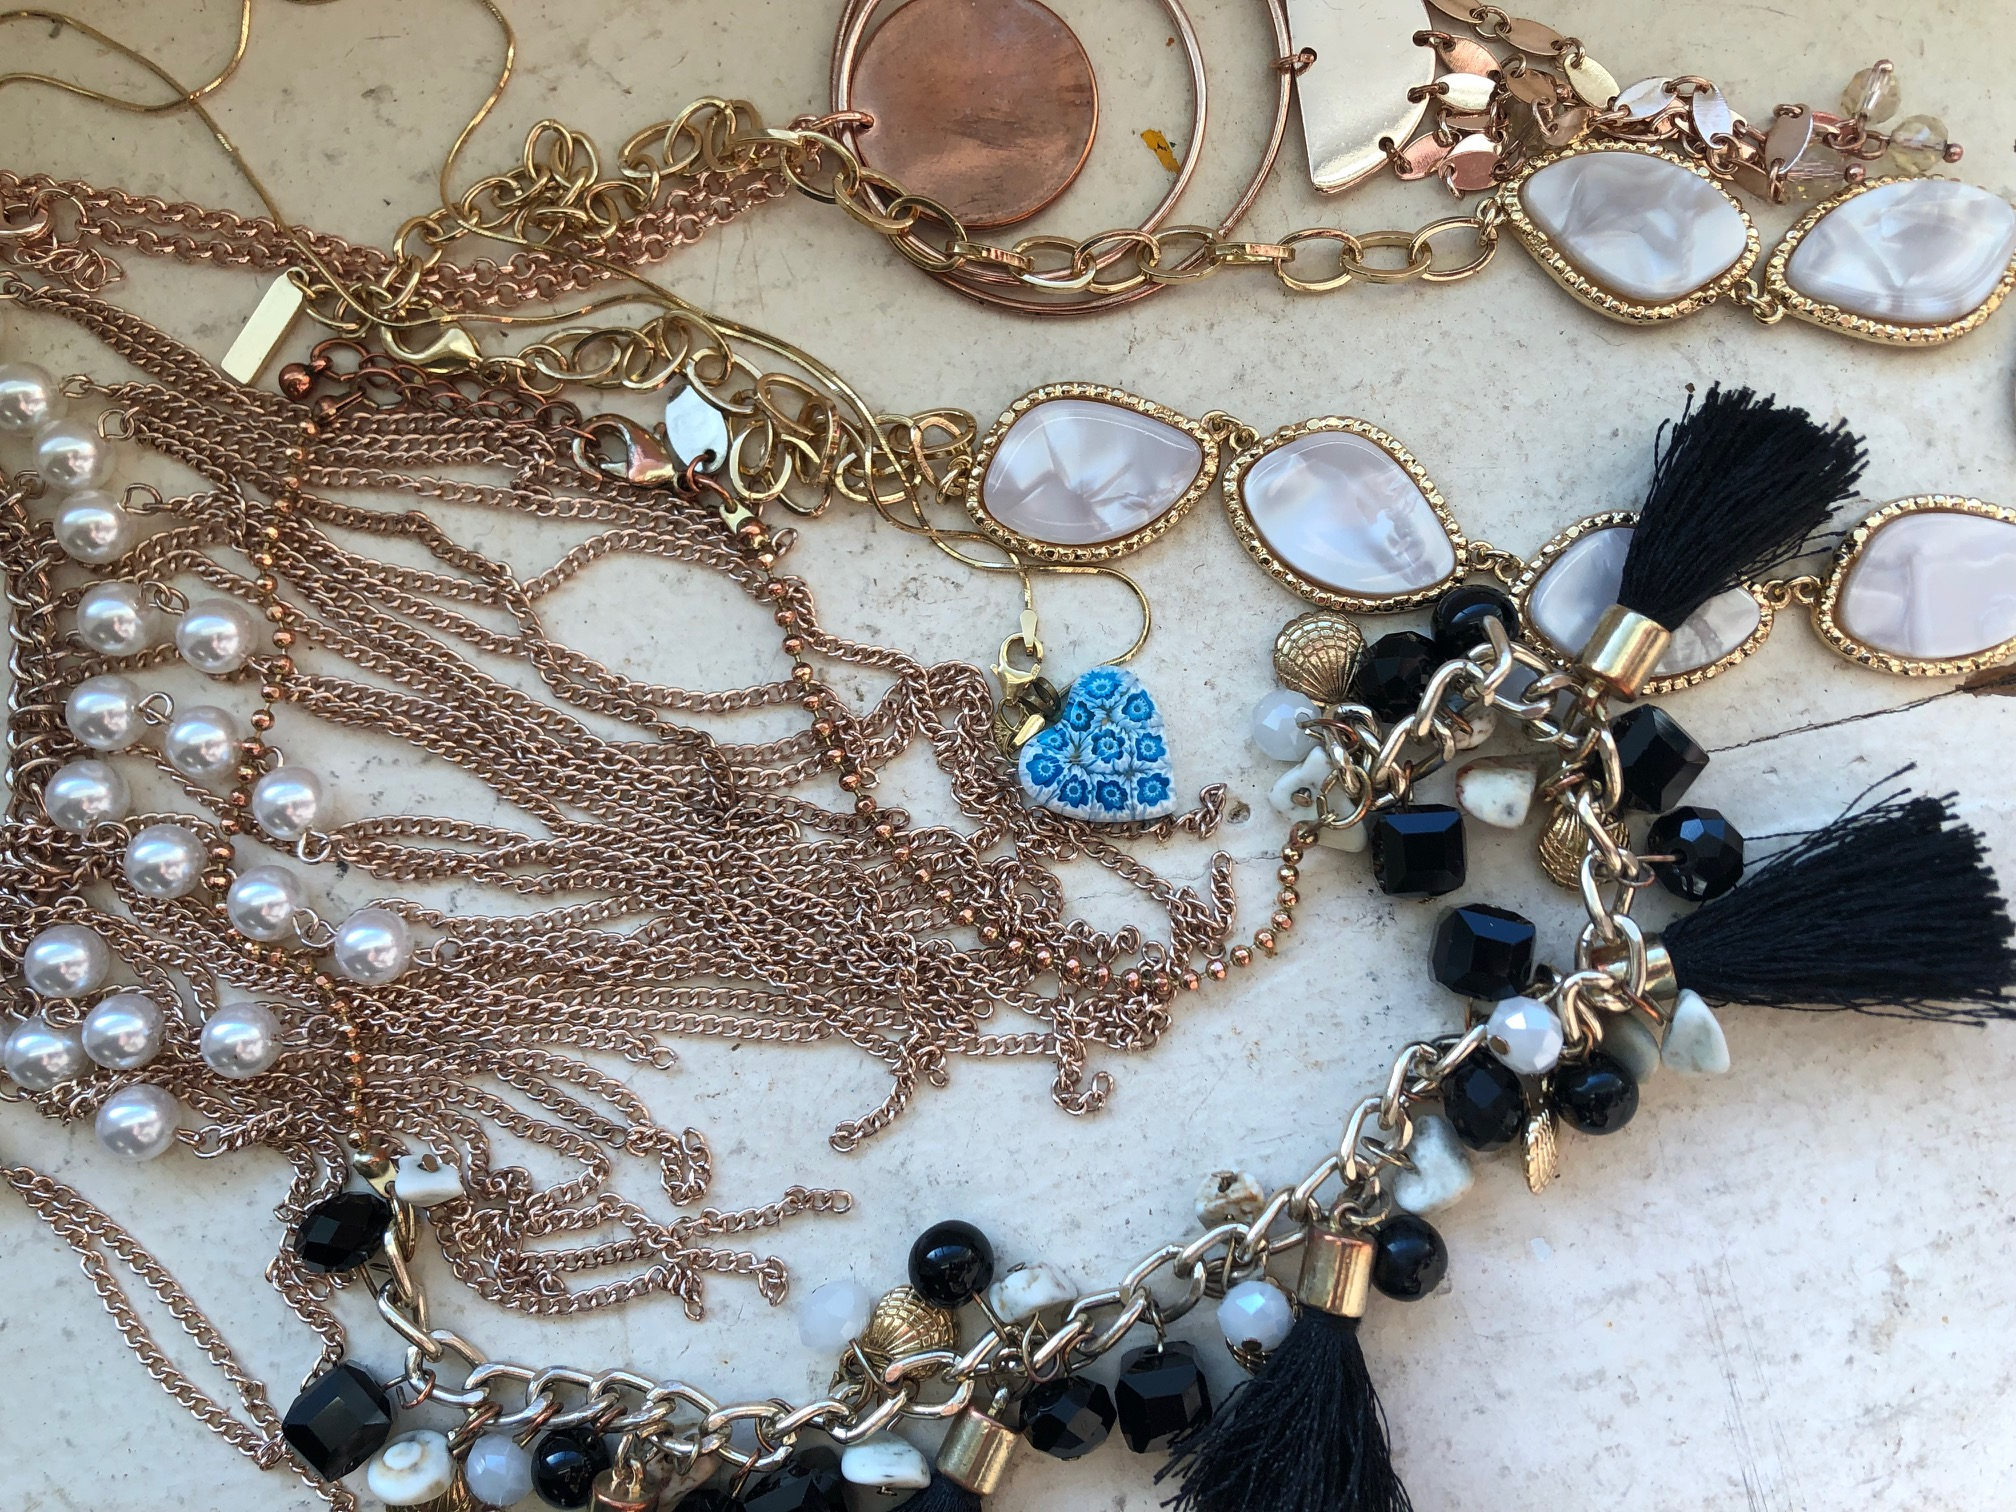 Jewelry Collection (Continued): Necklaces